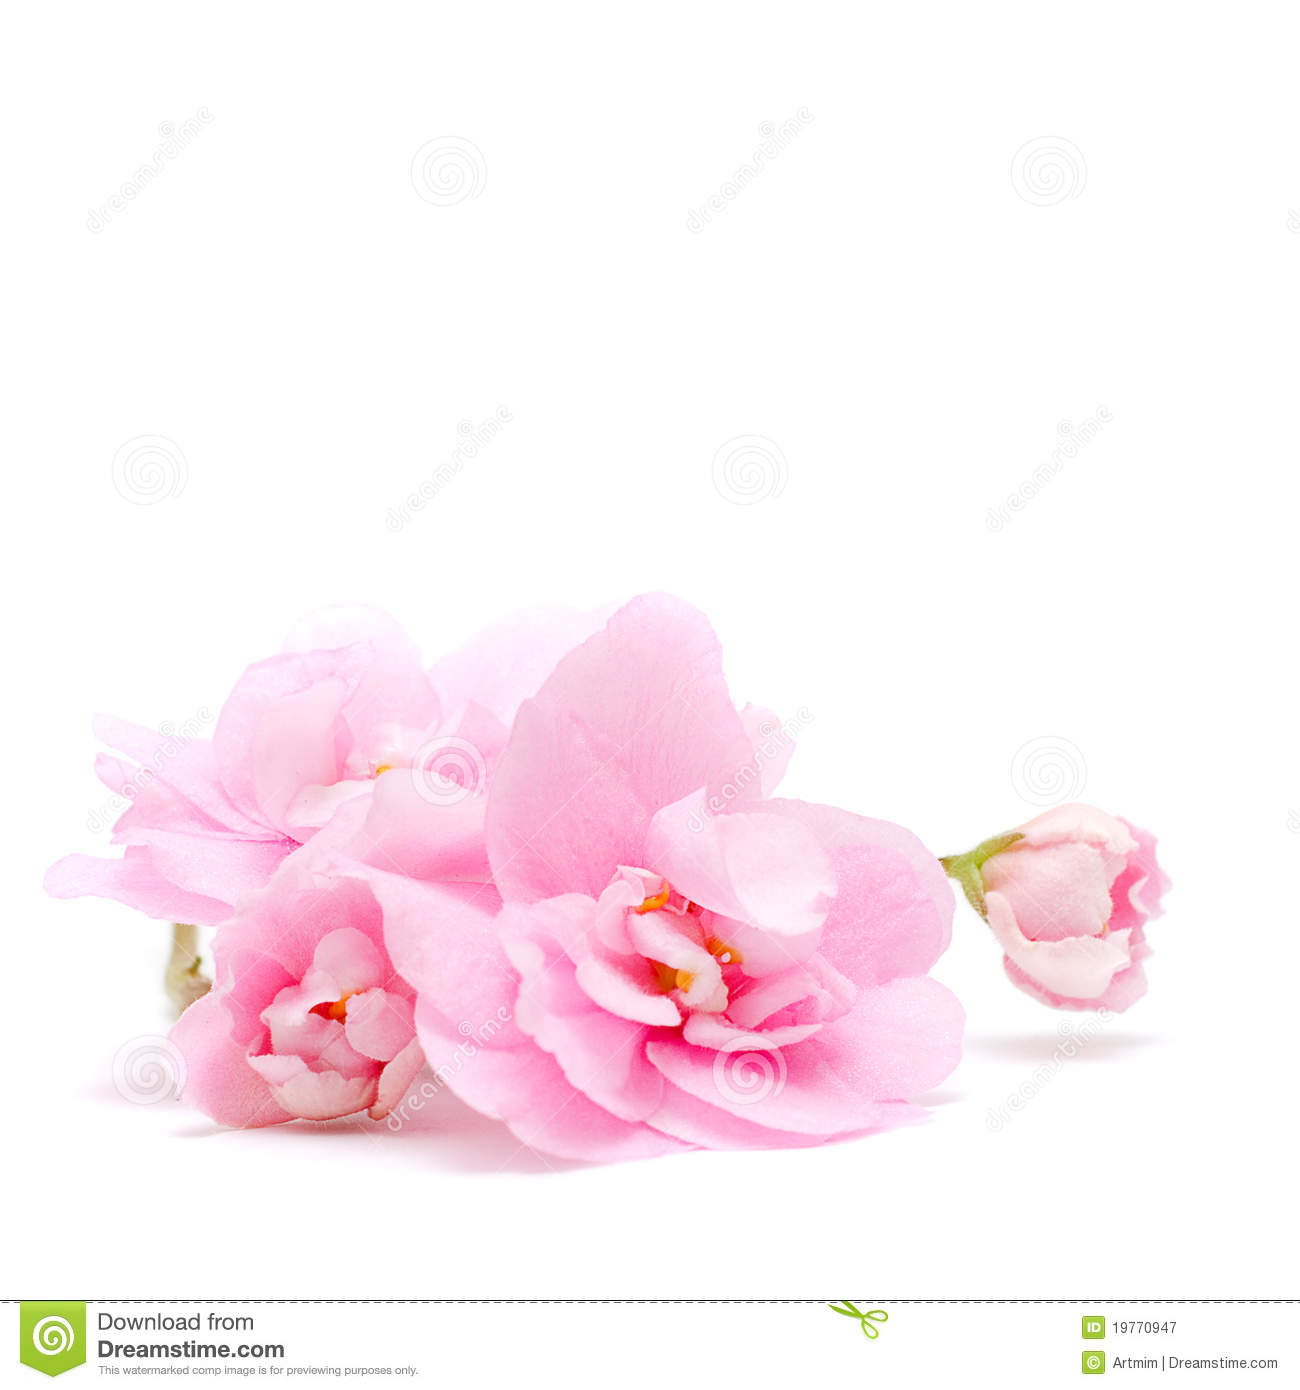 pink floral background jpg - photo #12